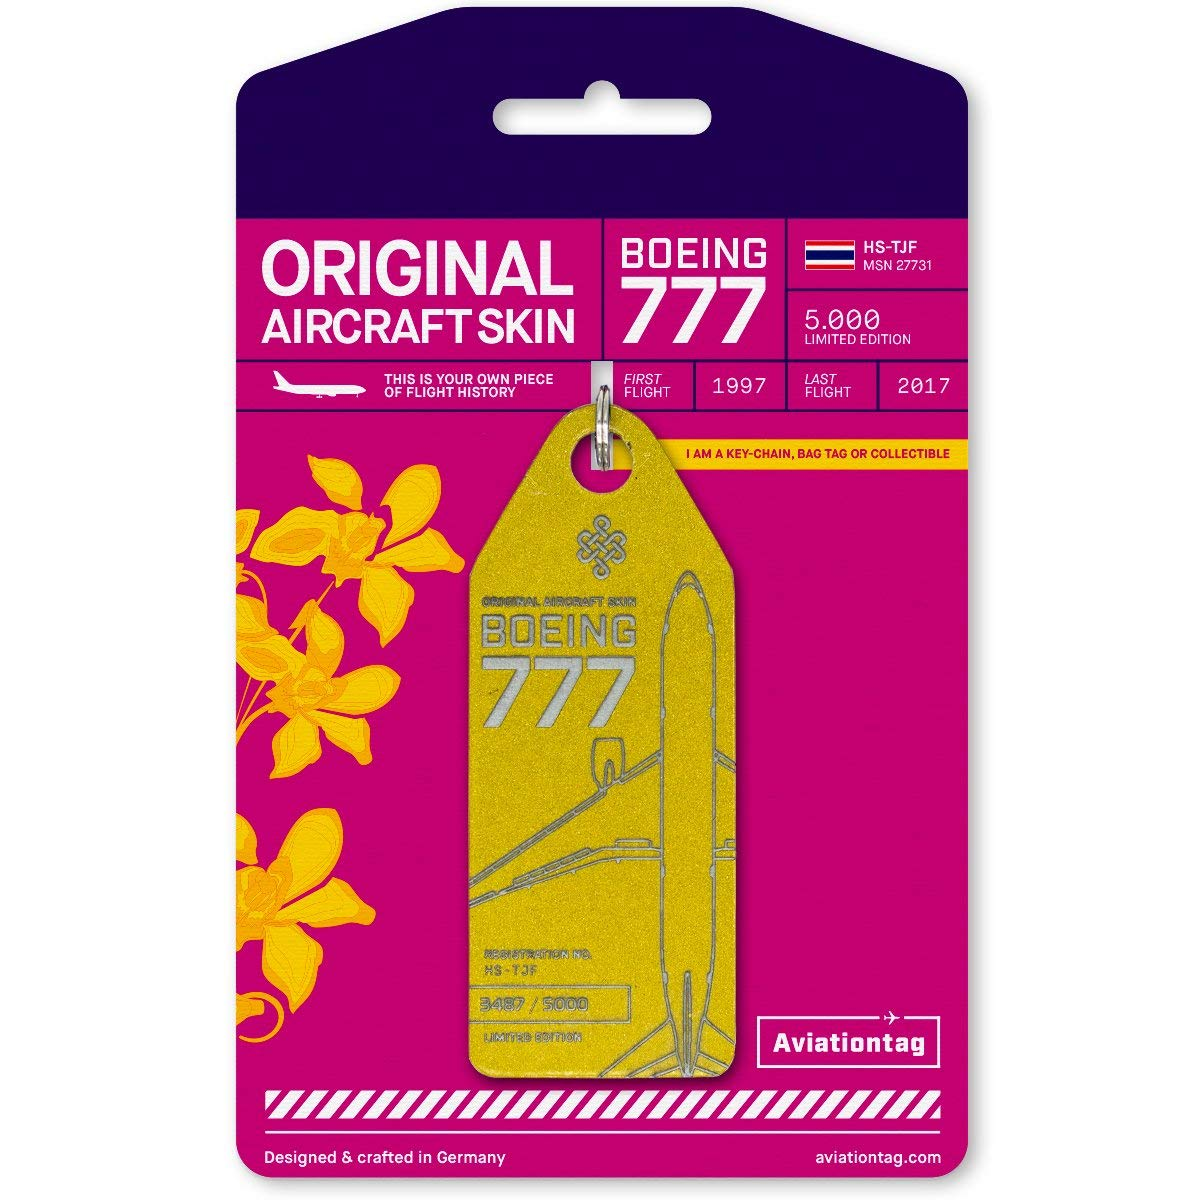 AVT038 AviationTag Boeing 777-200 Reg #HS-TJF (Thai Airways) Gold Original Aircraft Skin Keychain/Luggage Tag/Etc with Lost & Found Feature by AviationTag